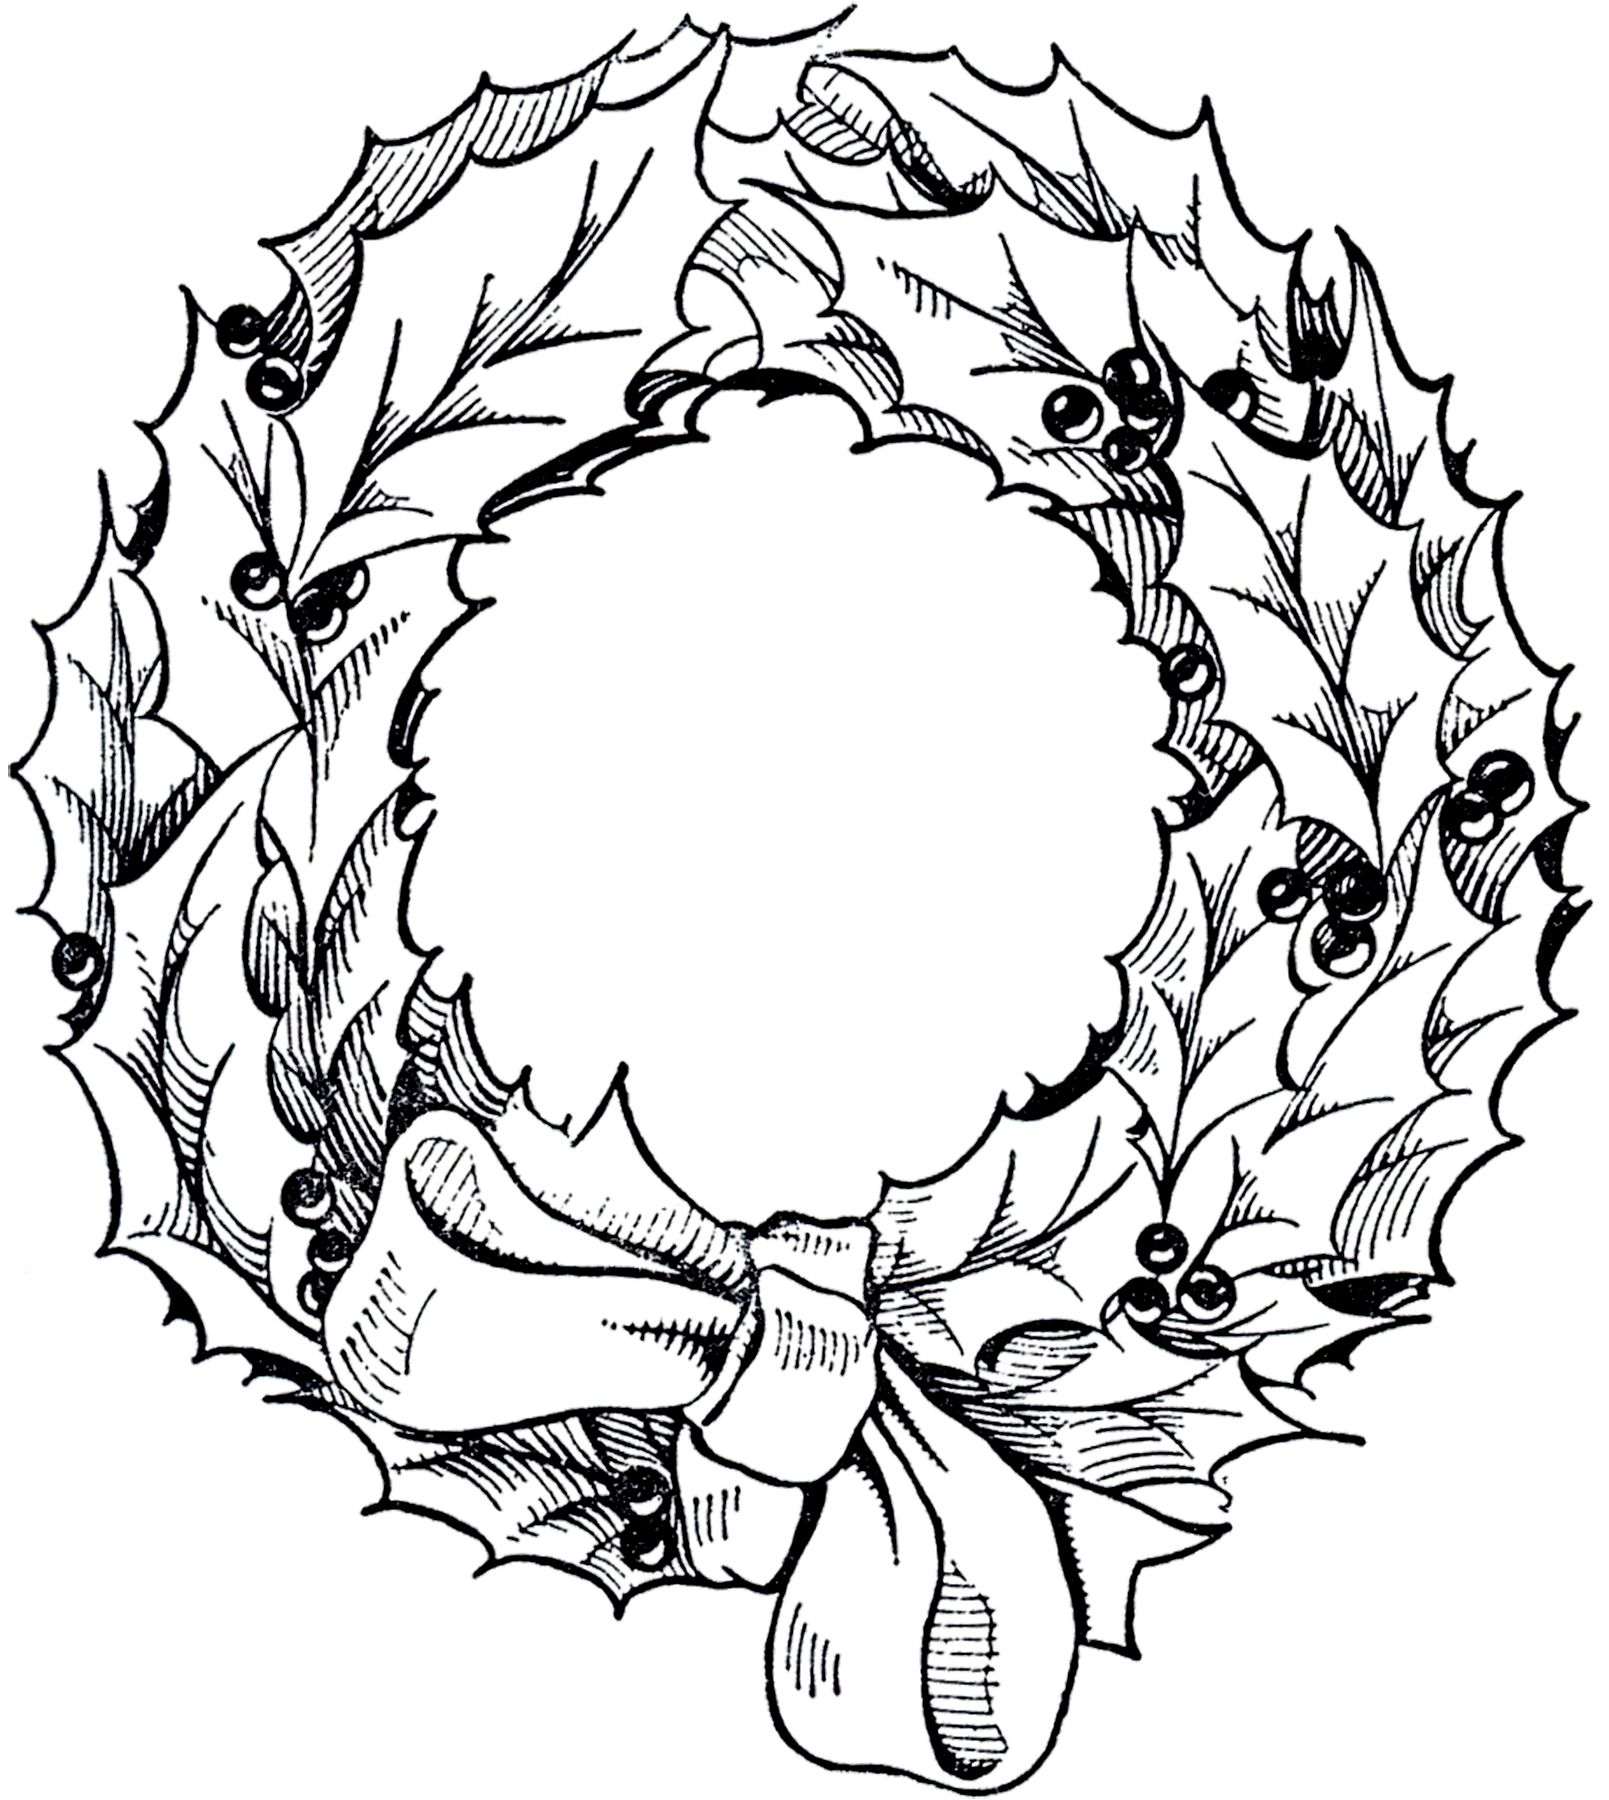 Vintage Christmas Wreath Graphic Christmas wreath